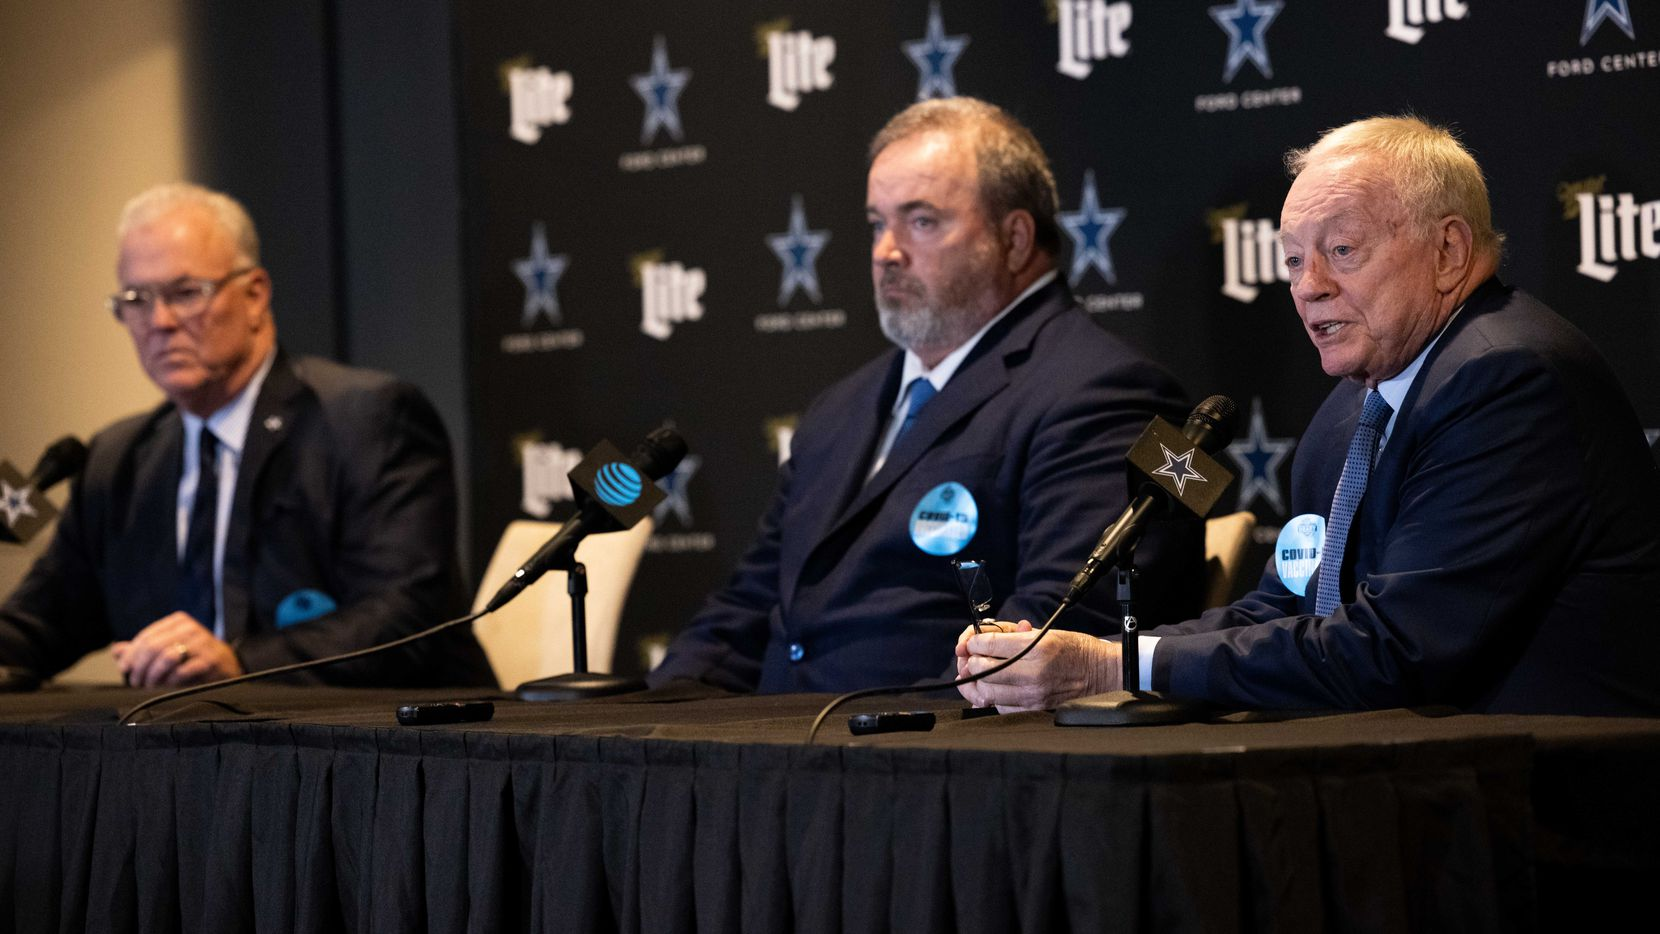 (From left) Dallas Cowboys CEO Stephen Jones, coach Mike McCarthy and Dallas Cowboys owner Jerry Jones speak at a press conference following their decision to take Micah Parsons during the NFL draft at the Star on Thursday, April 29, 2021, in Frisco.